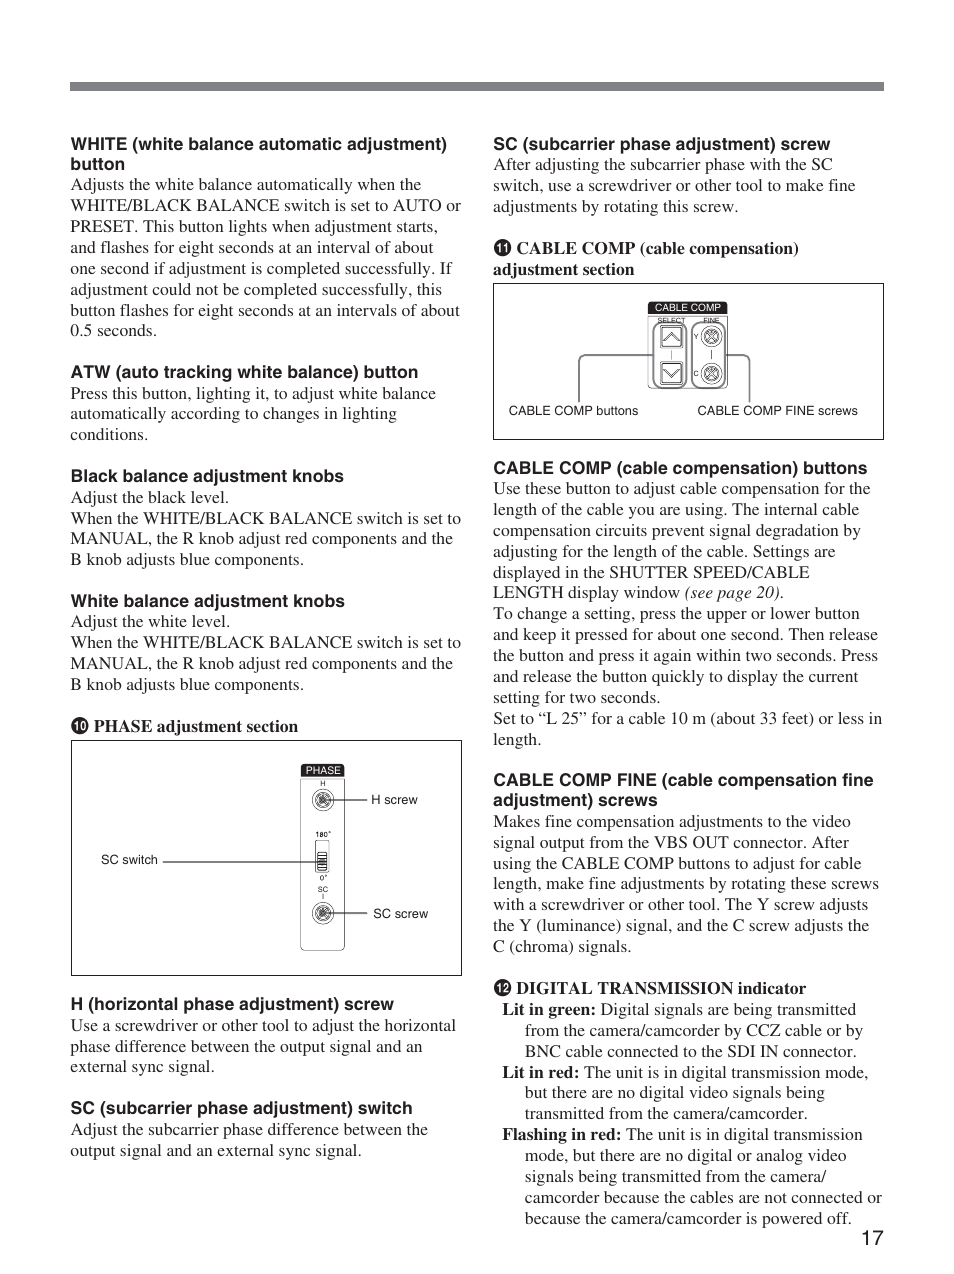 sony ccu d50 user manual page 17 31 original mode rh manualsdir com sony ccu-d50 service manual Sony Linear PCM Recorders